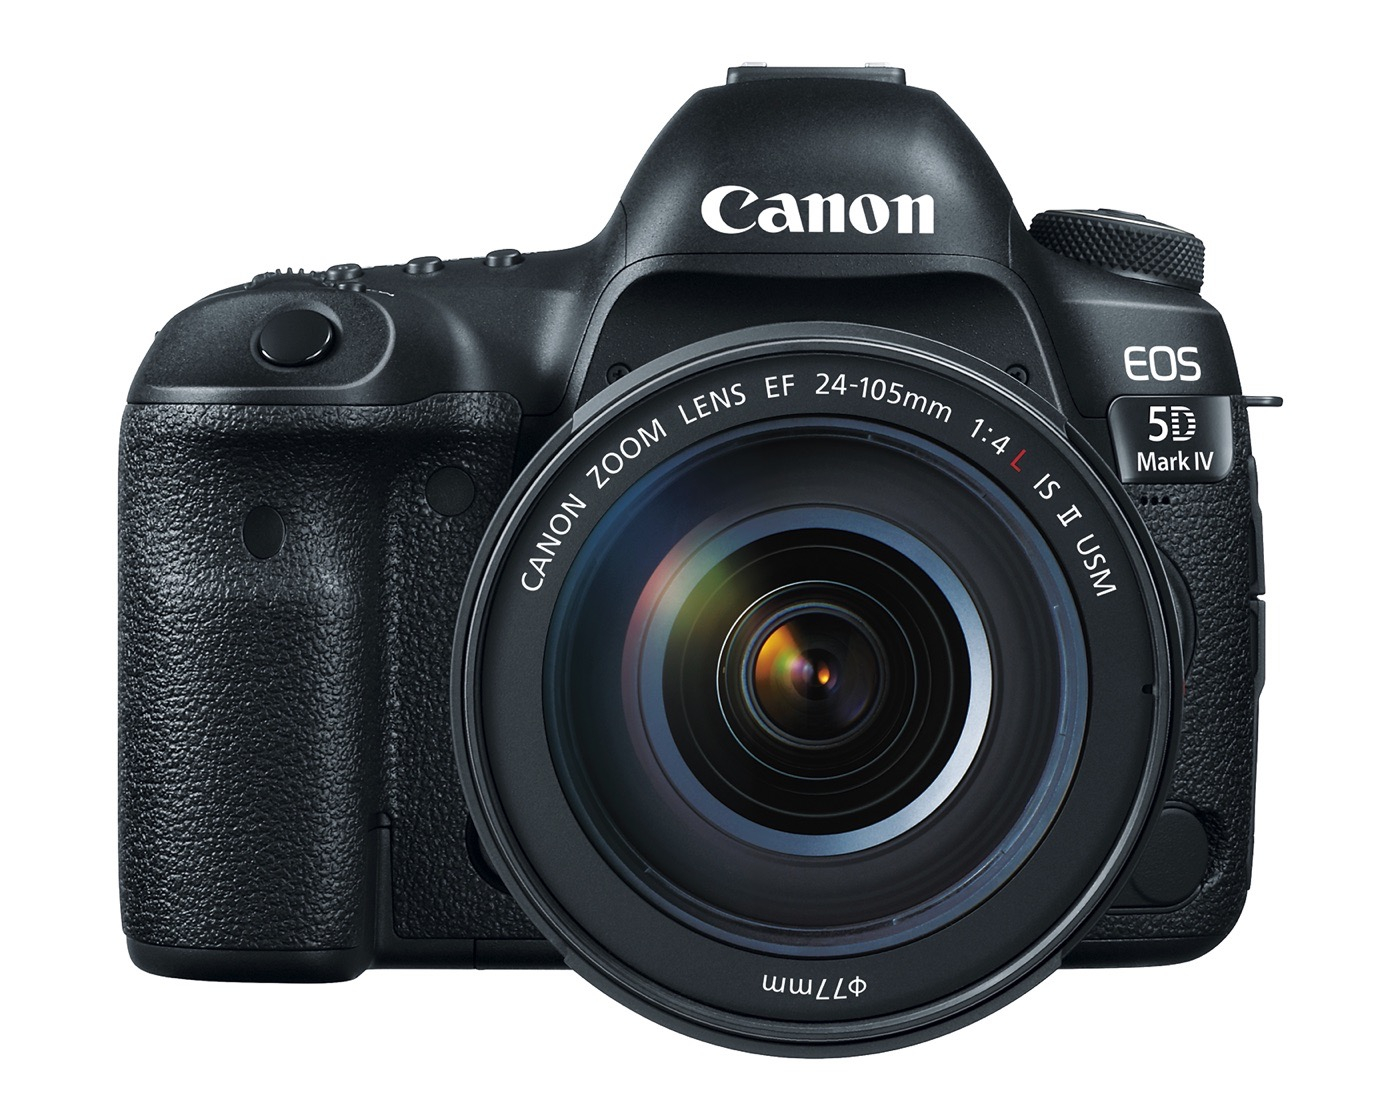 Canon EOS 5D Mark IV 30.4 Megapiksel ve 4K Video